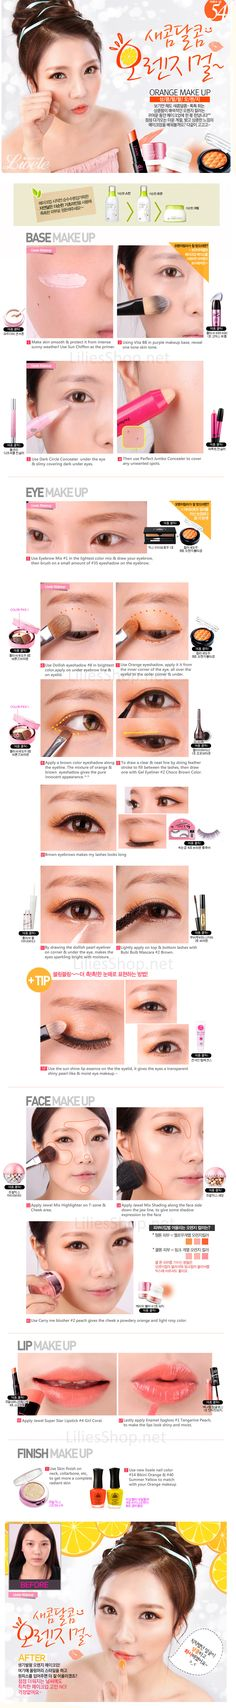 The Complete MakeUp Trechniques explained & visualizing in one picture-MakeUp Tutorials